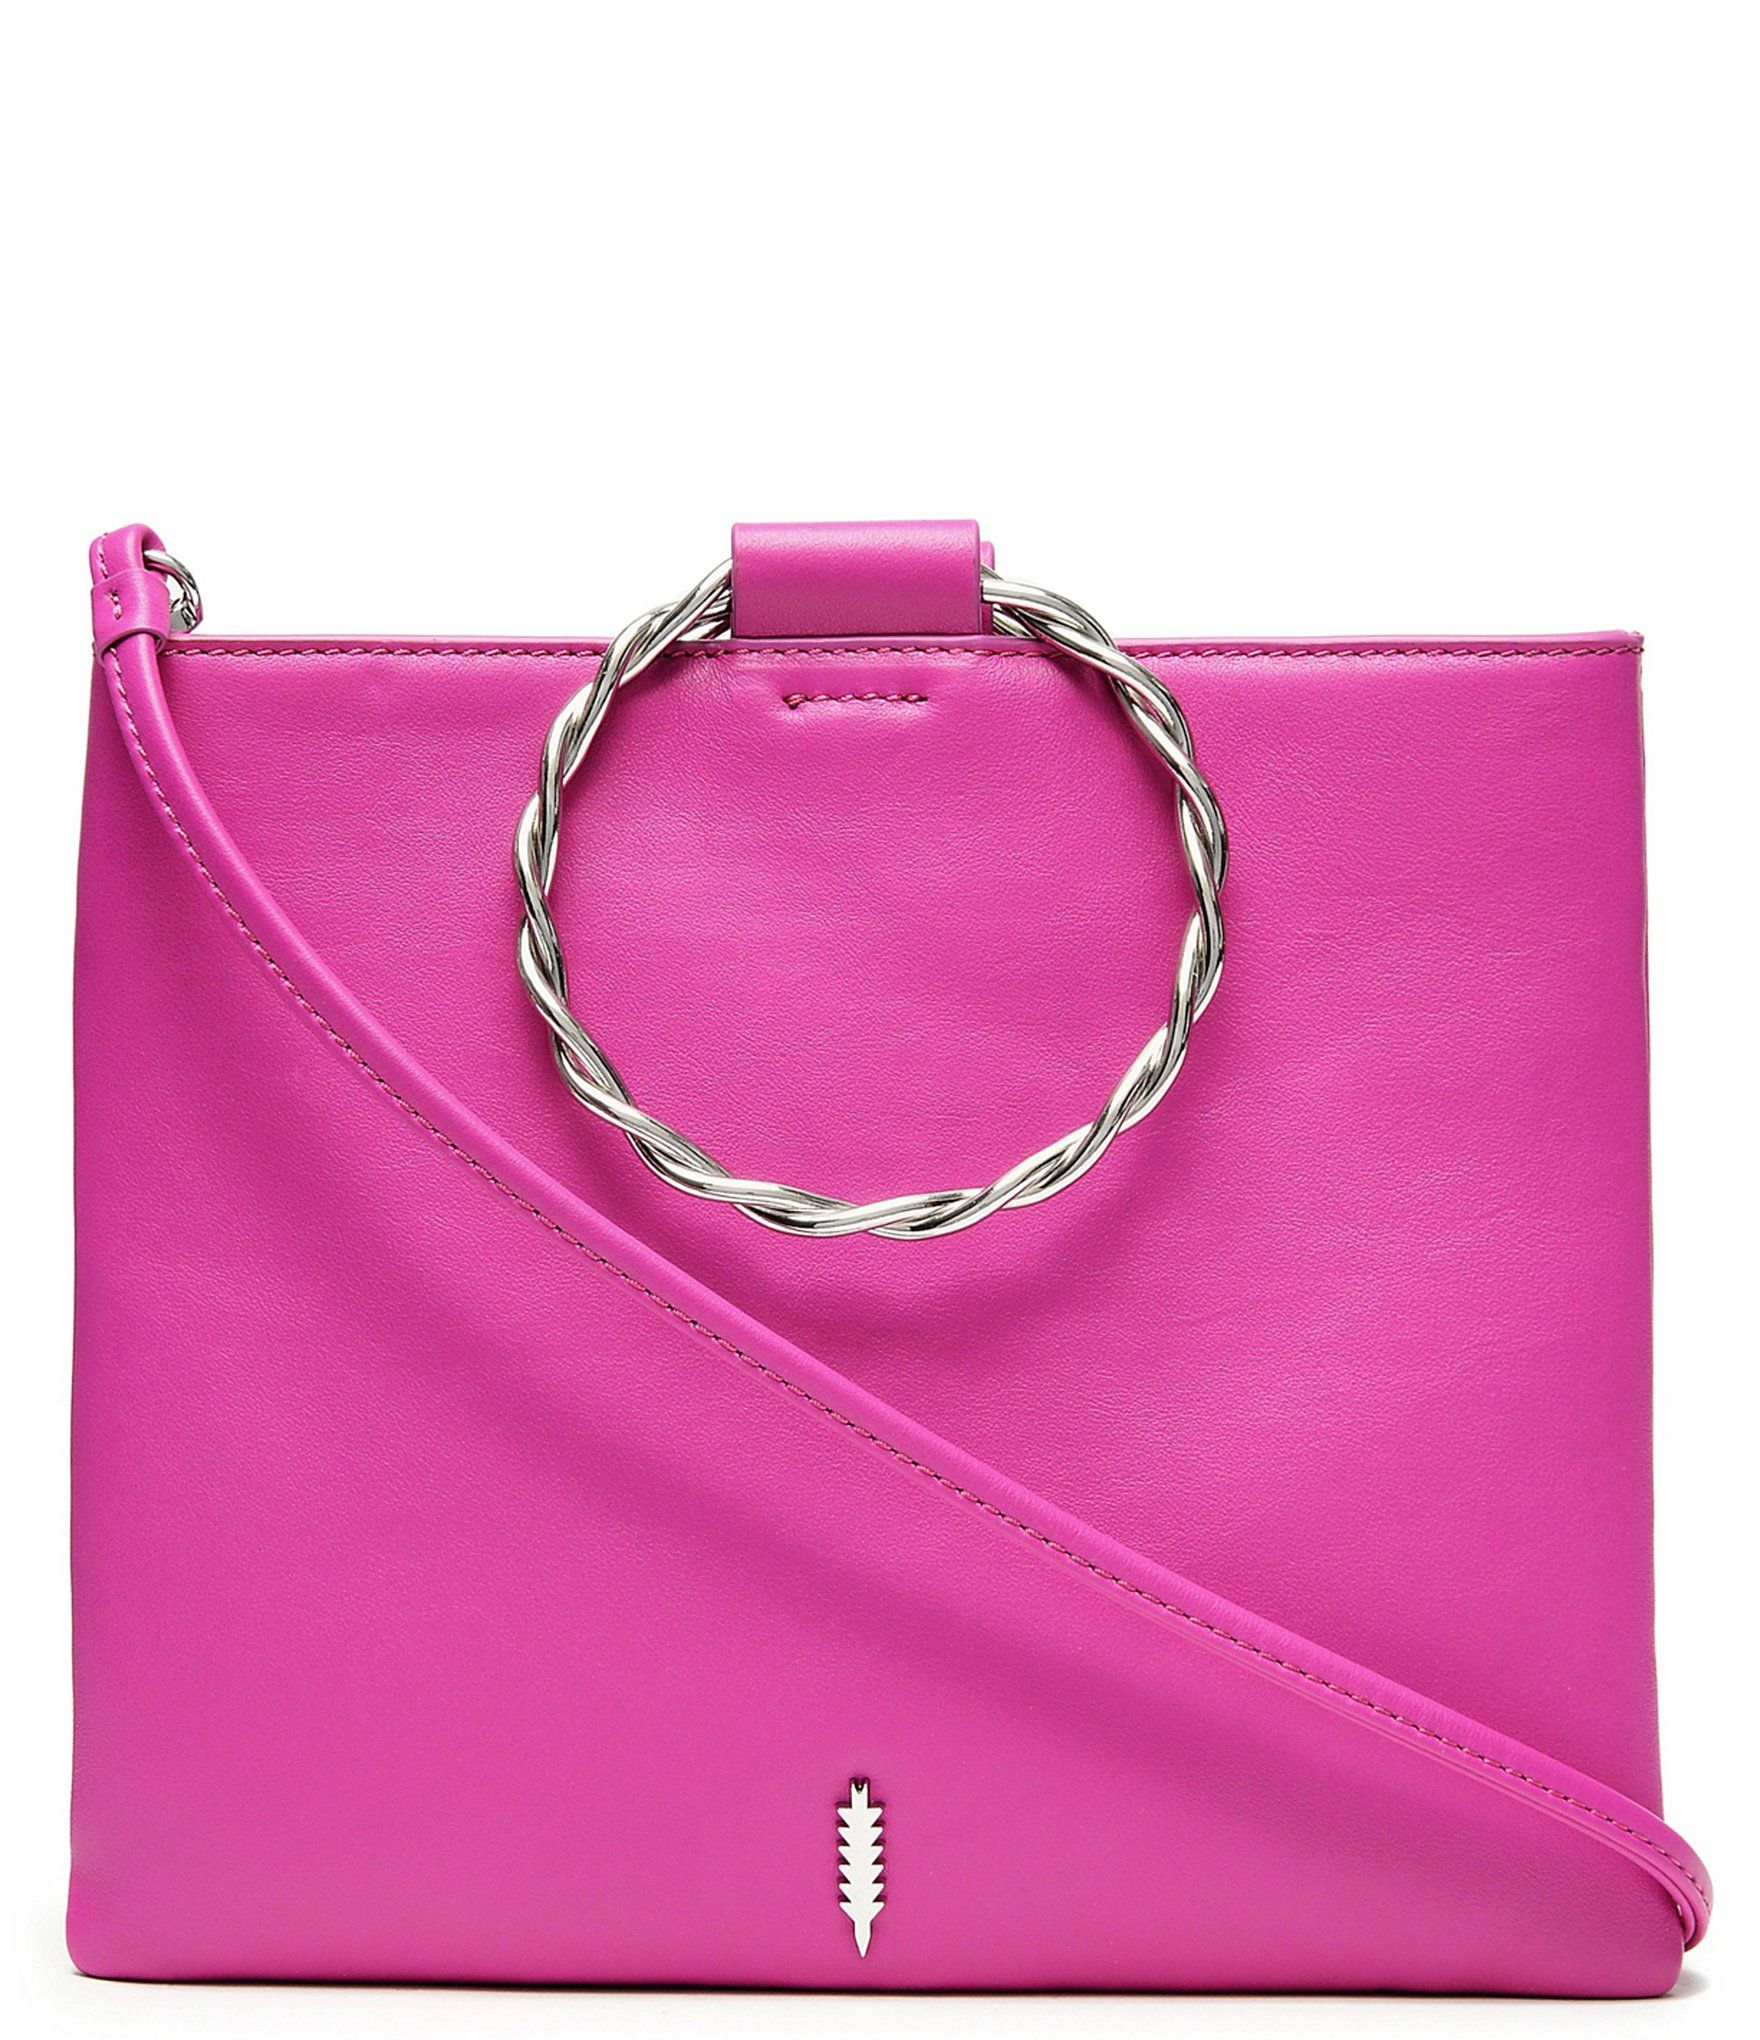 Thacker Le Pouch Twisted Ring Handle Italian Leather Crossbody Bag